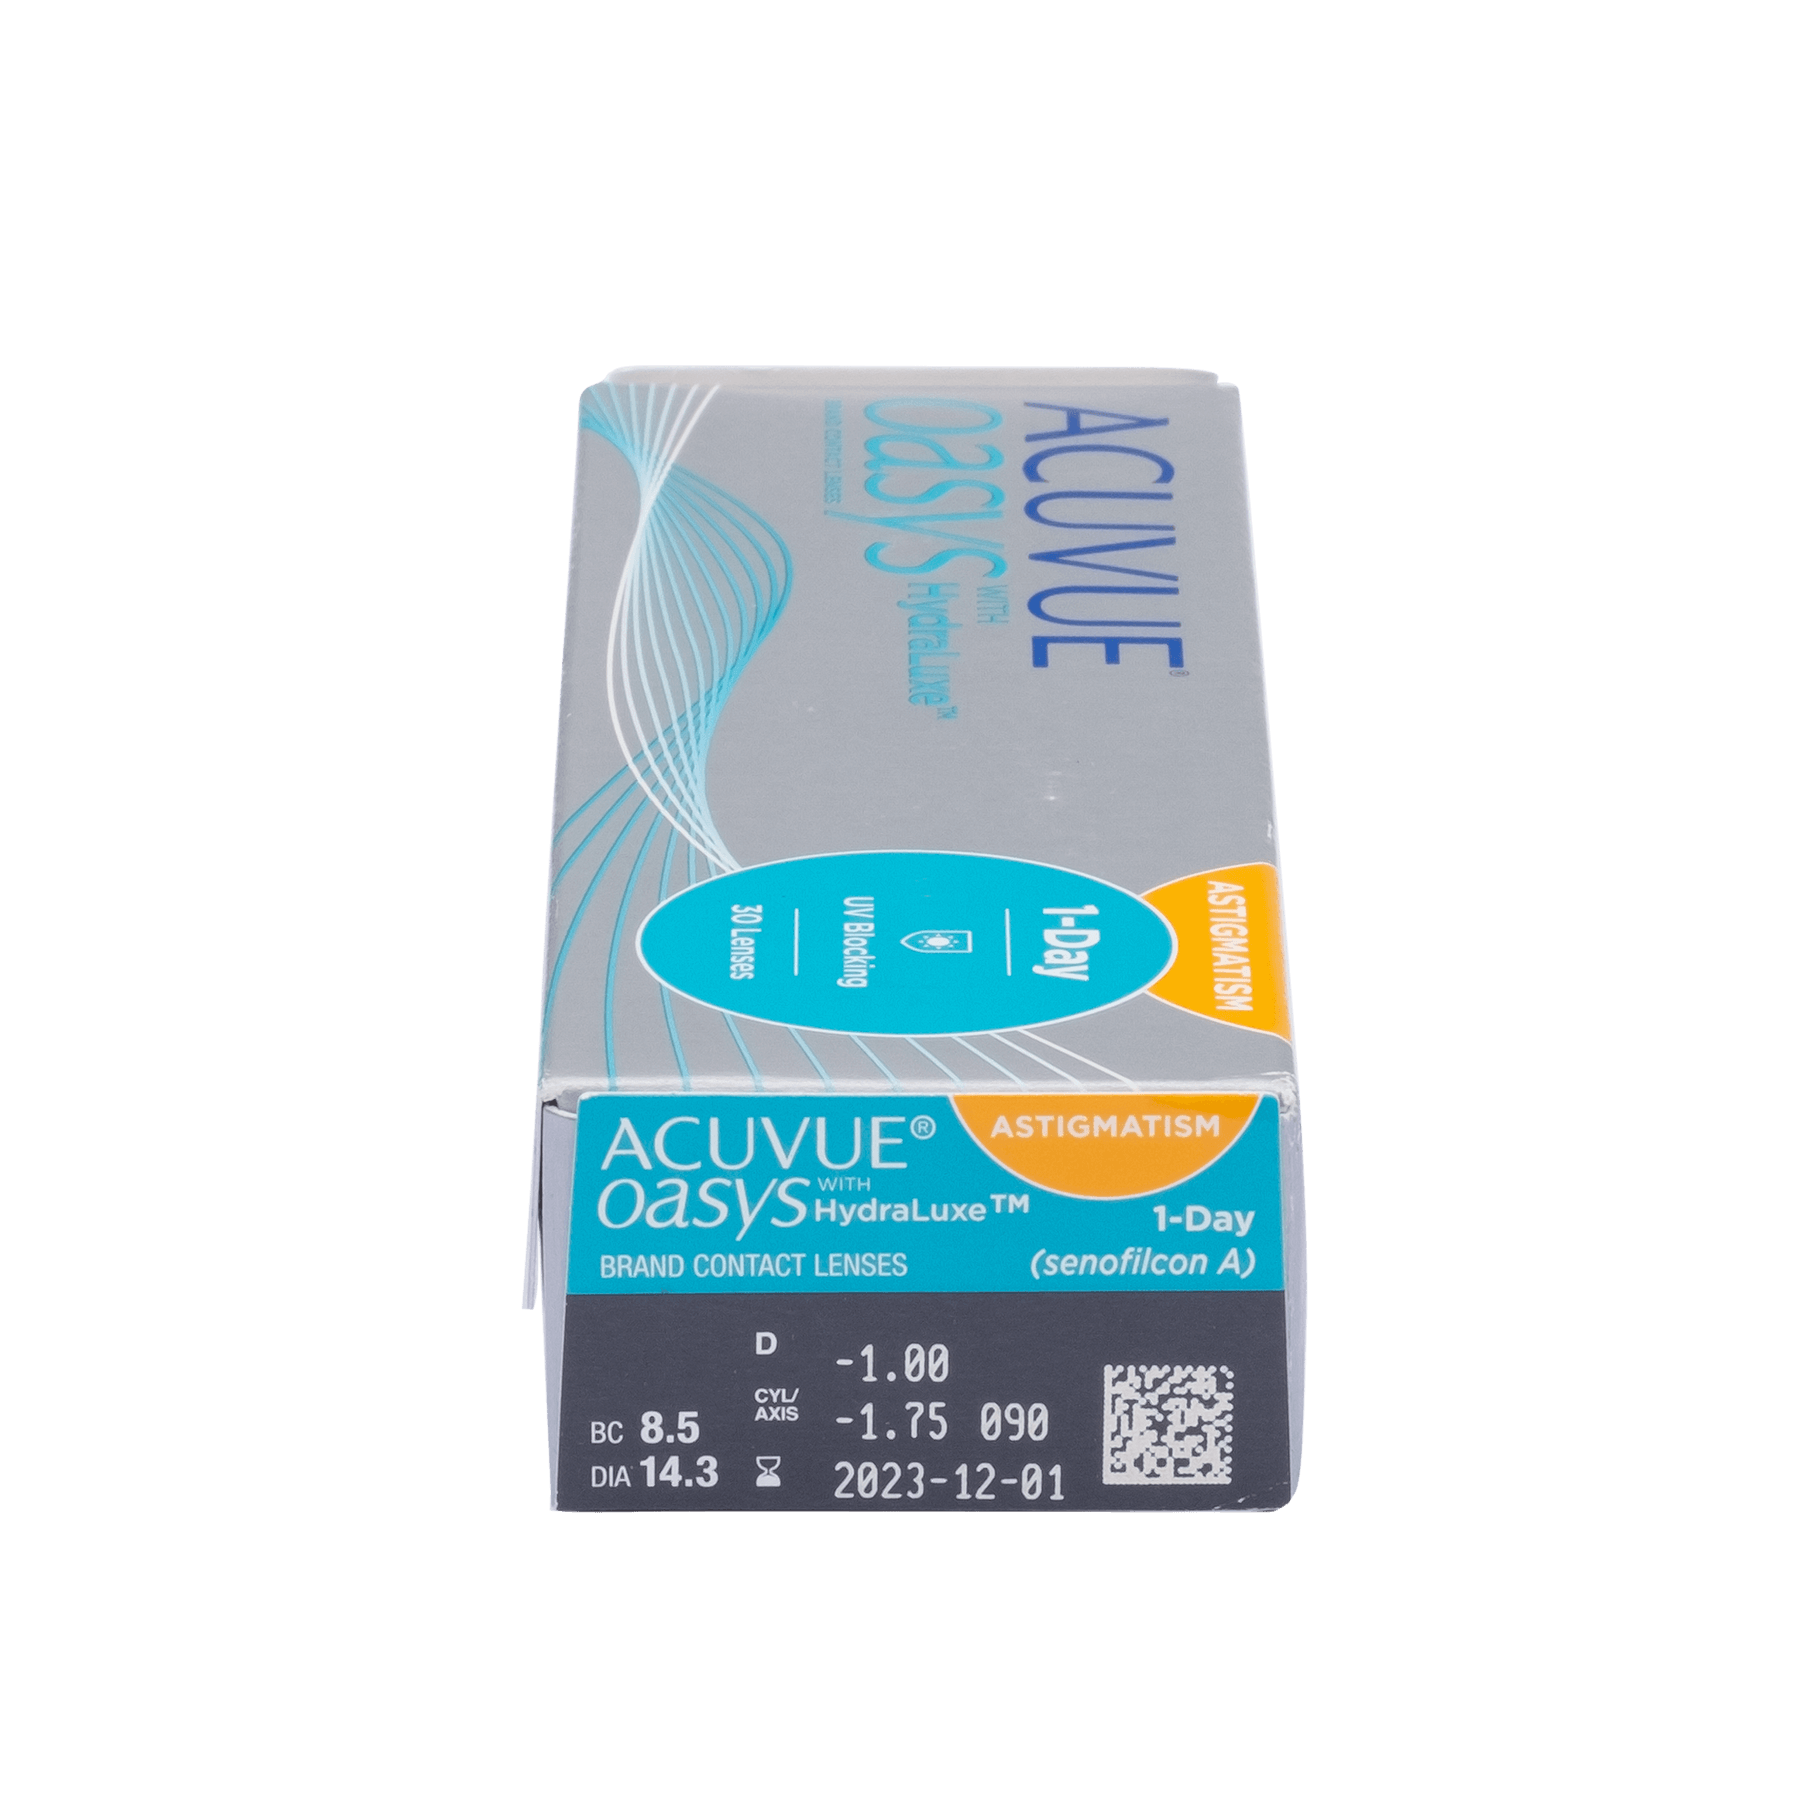 Acuvue Oasys 1-Day with Hydraluxe for Astigmatism 30pk